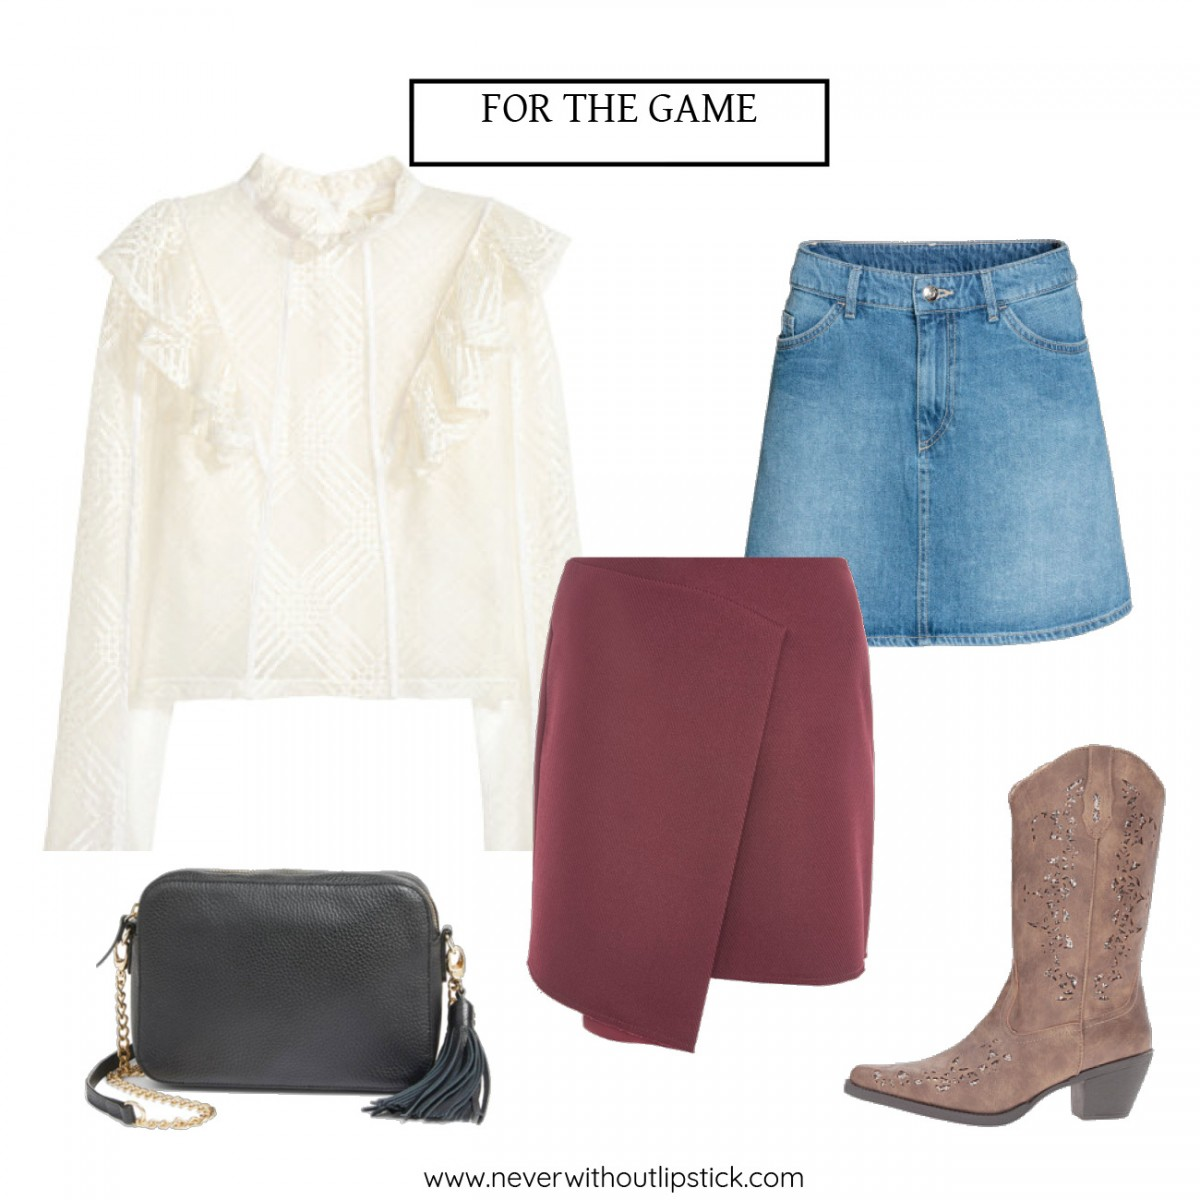 Style blogger Ashley Deatherage shares 4 outfit ideas for the Texas/OU football game weekend | Never Without Lipstick | football game outfit, college football game outfit, fall football game outfit, texas ou weekend, texas ou outfits | Football Game Outfits: Texas VS OU featured by top US fashion blog, Never WIthout Lipstick